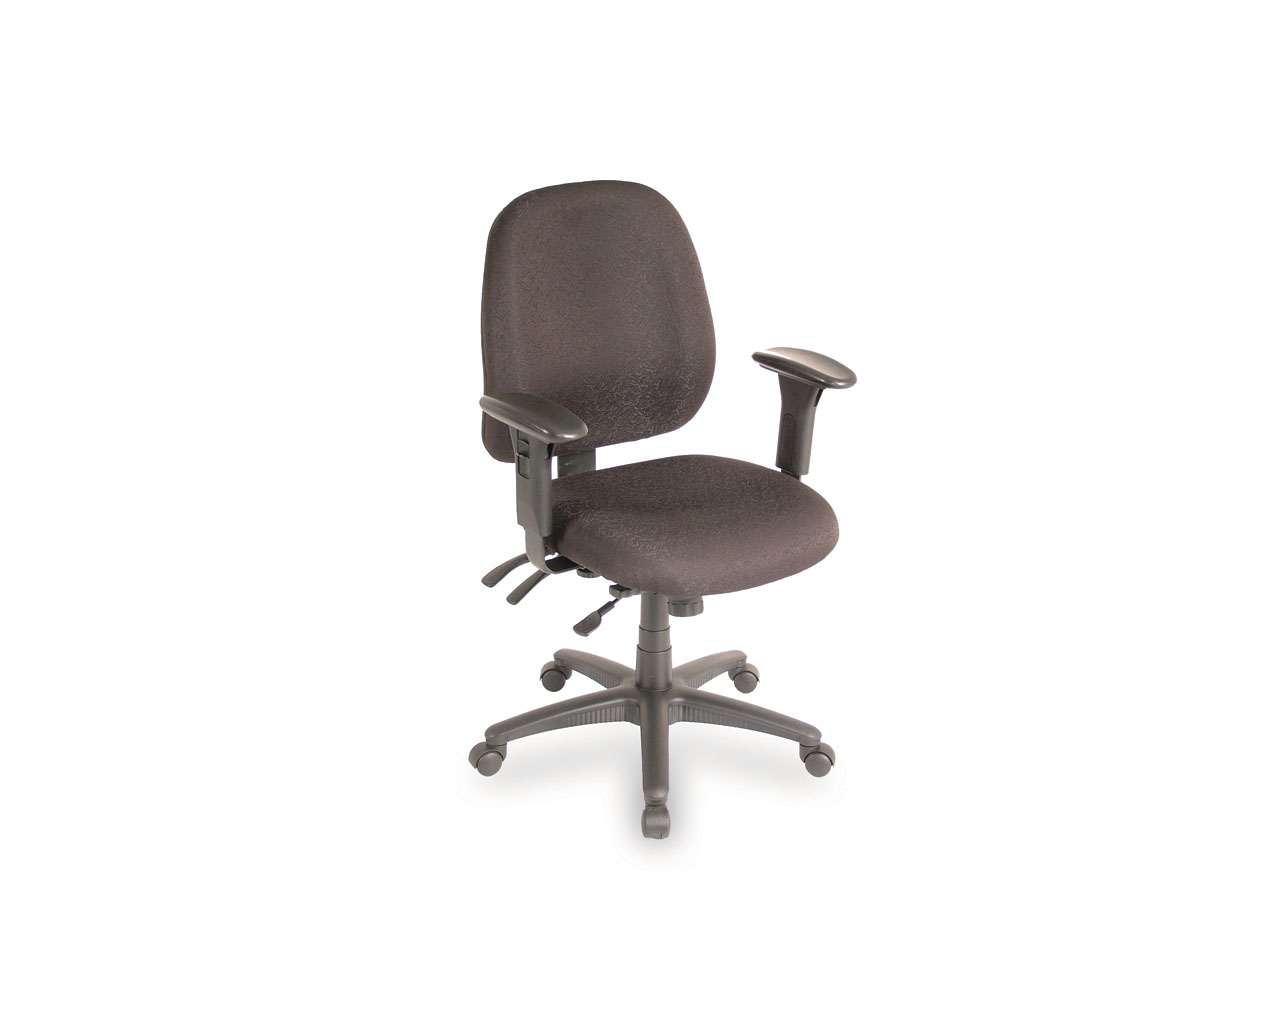 Ergo Form Multi-Function Chair